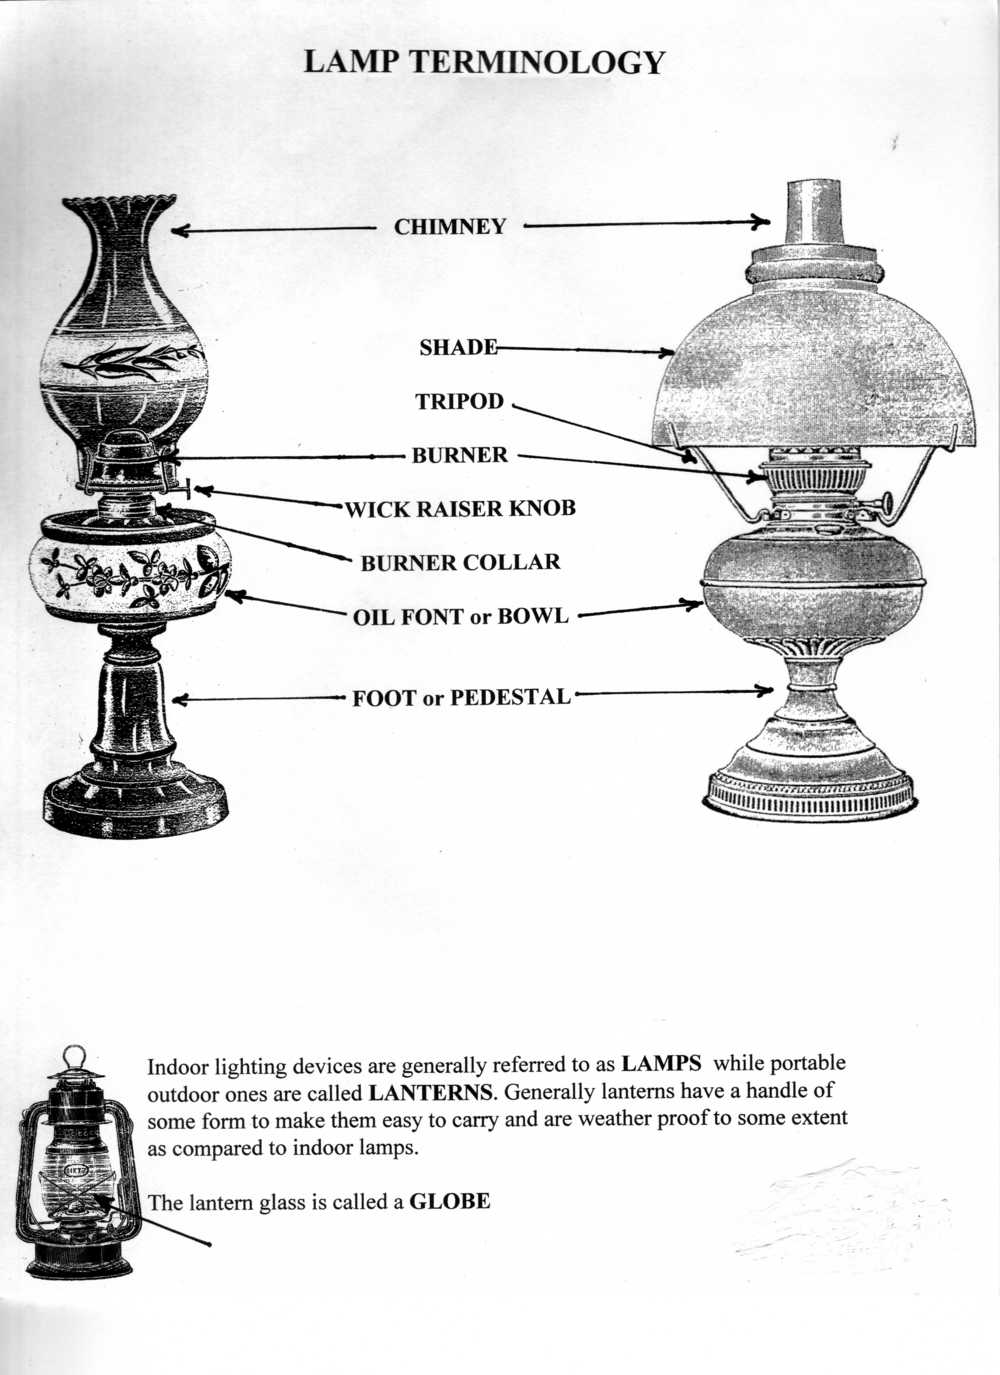 Aladdin Lamp Parts   Terminology   Pictures Specific To Model # 23